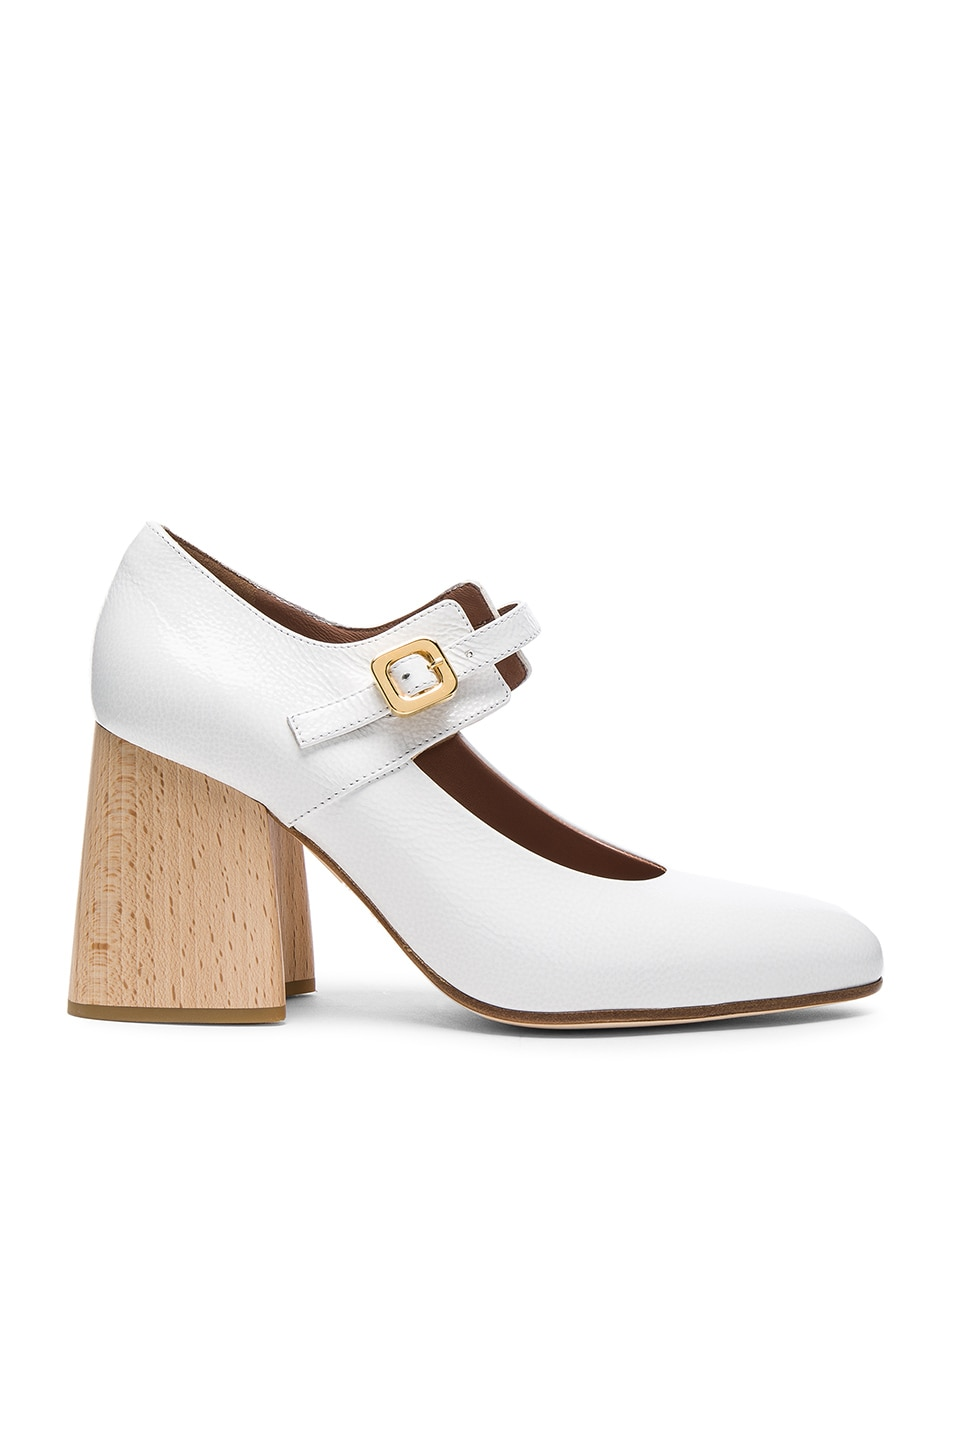 Image 1 of Marni Mary Jane Heels in Natural White